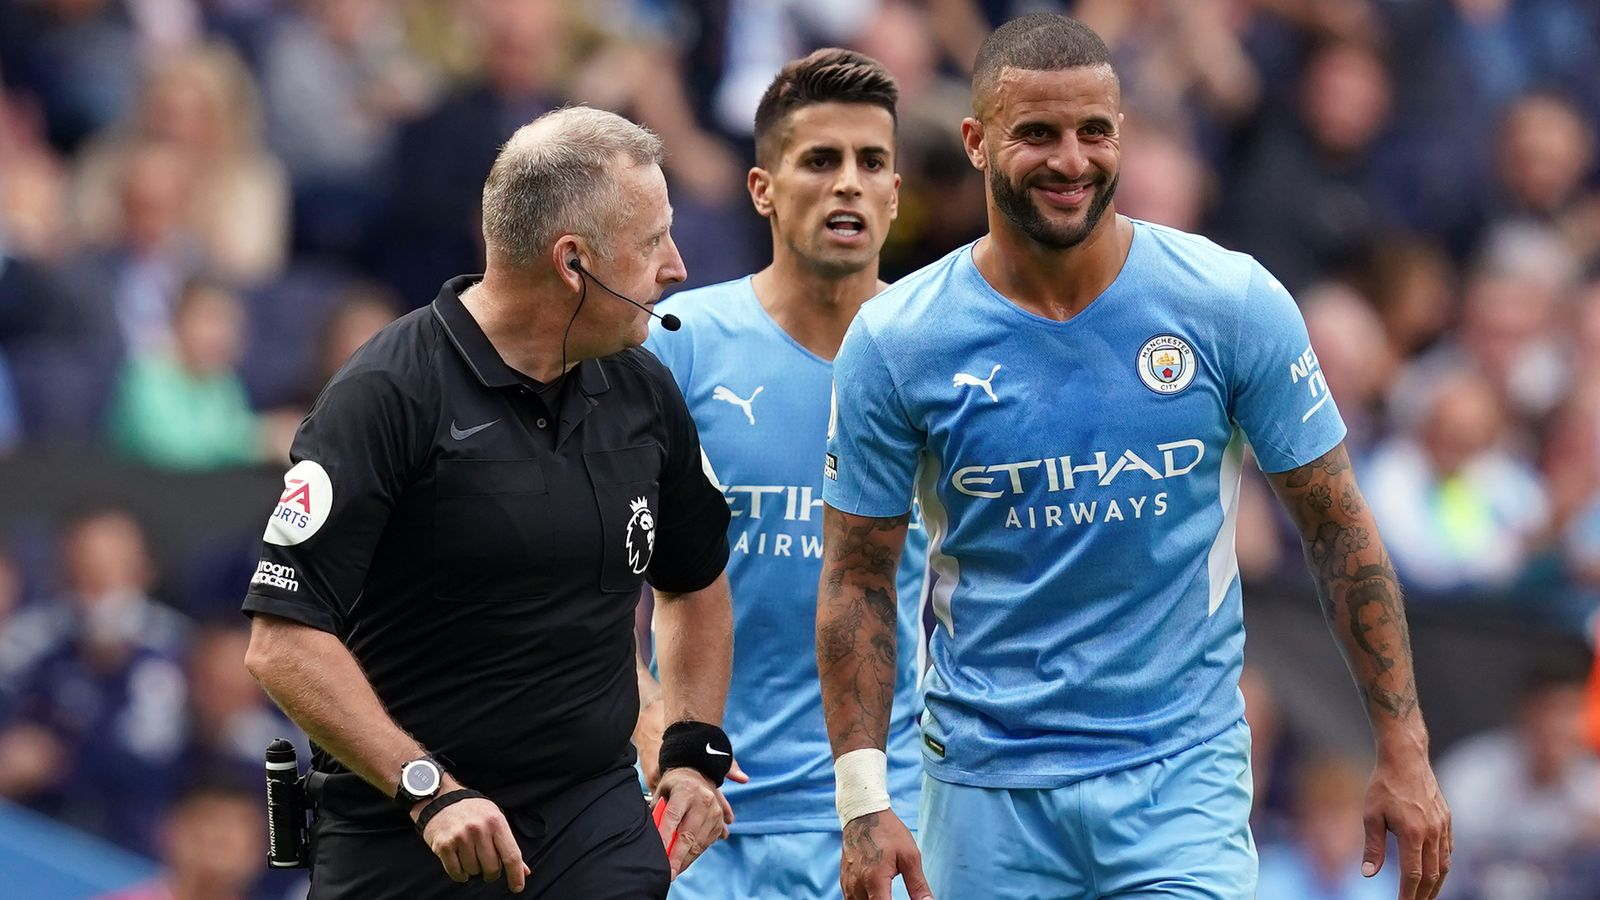 Ref Watch: Dermot Gallagher on Kyle Walker, Cristiano Ronaldo and Brighton vs Leicester incidents